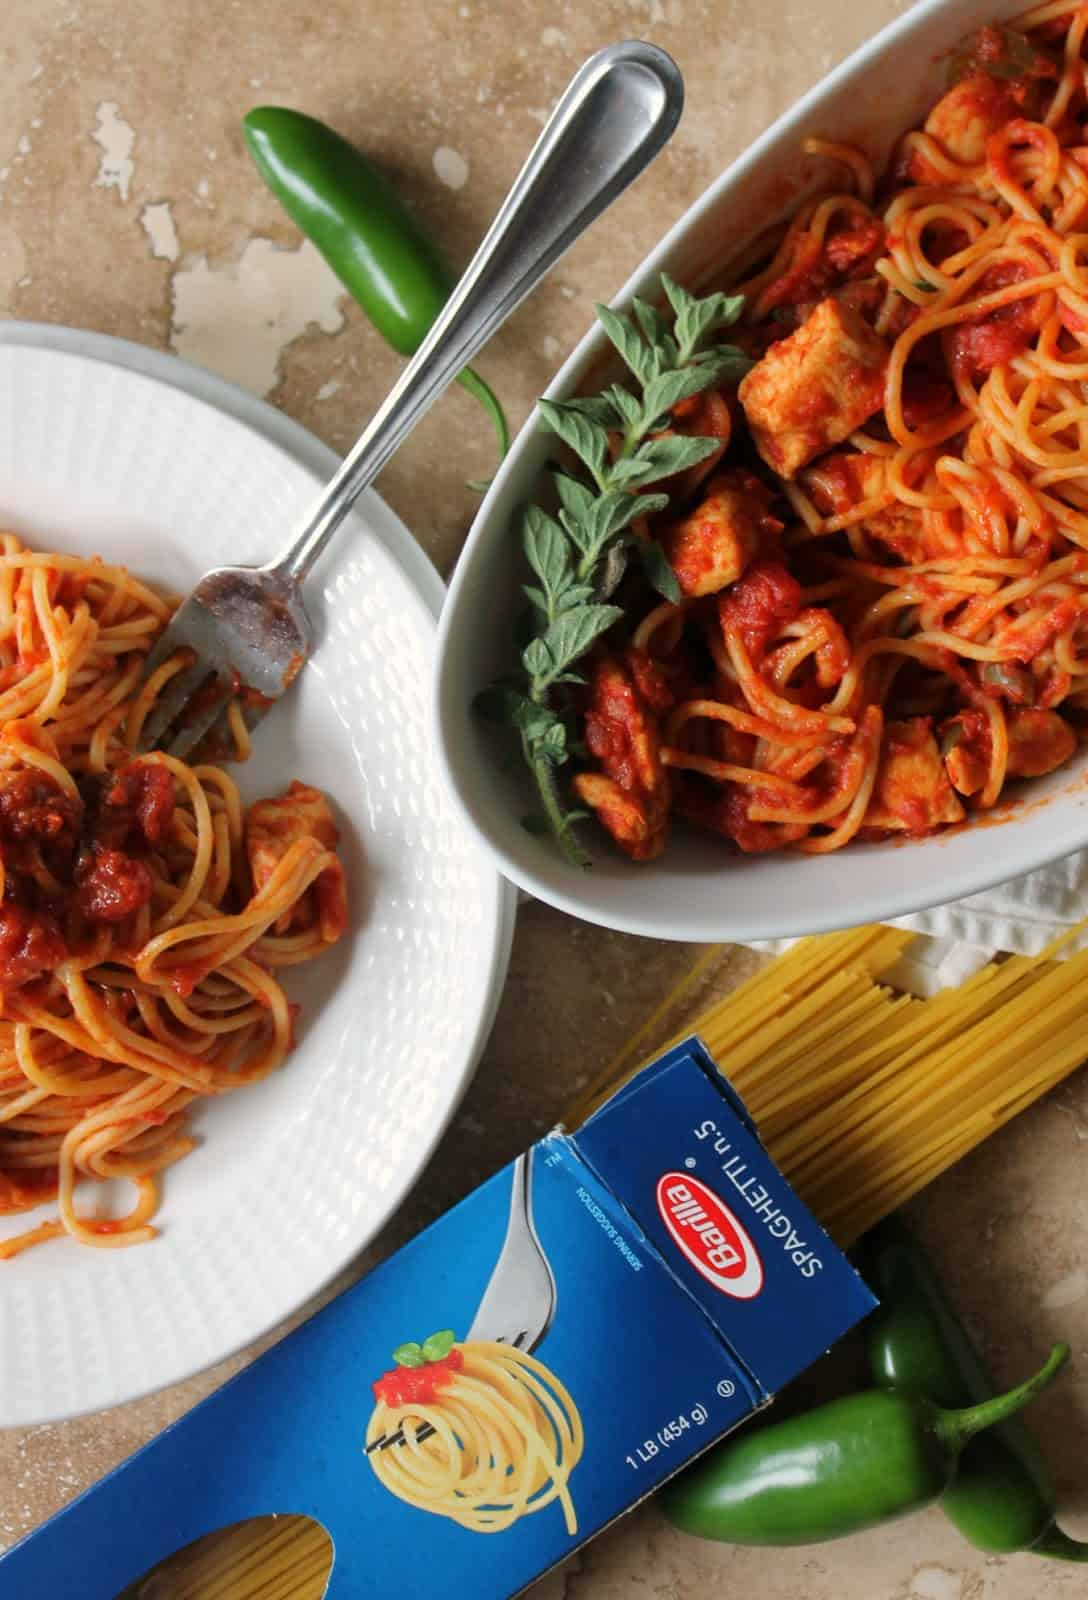 Overhead shot of Spaghetti with Chicken & Spicy Tomato Sauce on a dish and in serving dish with dry spaghetti noodles next to it.